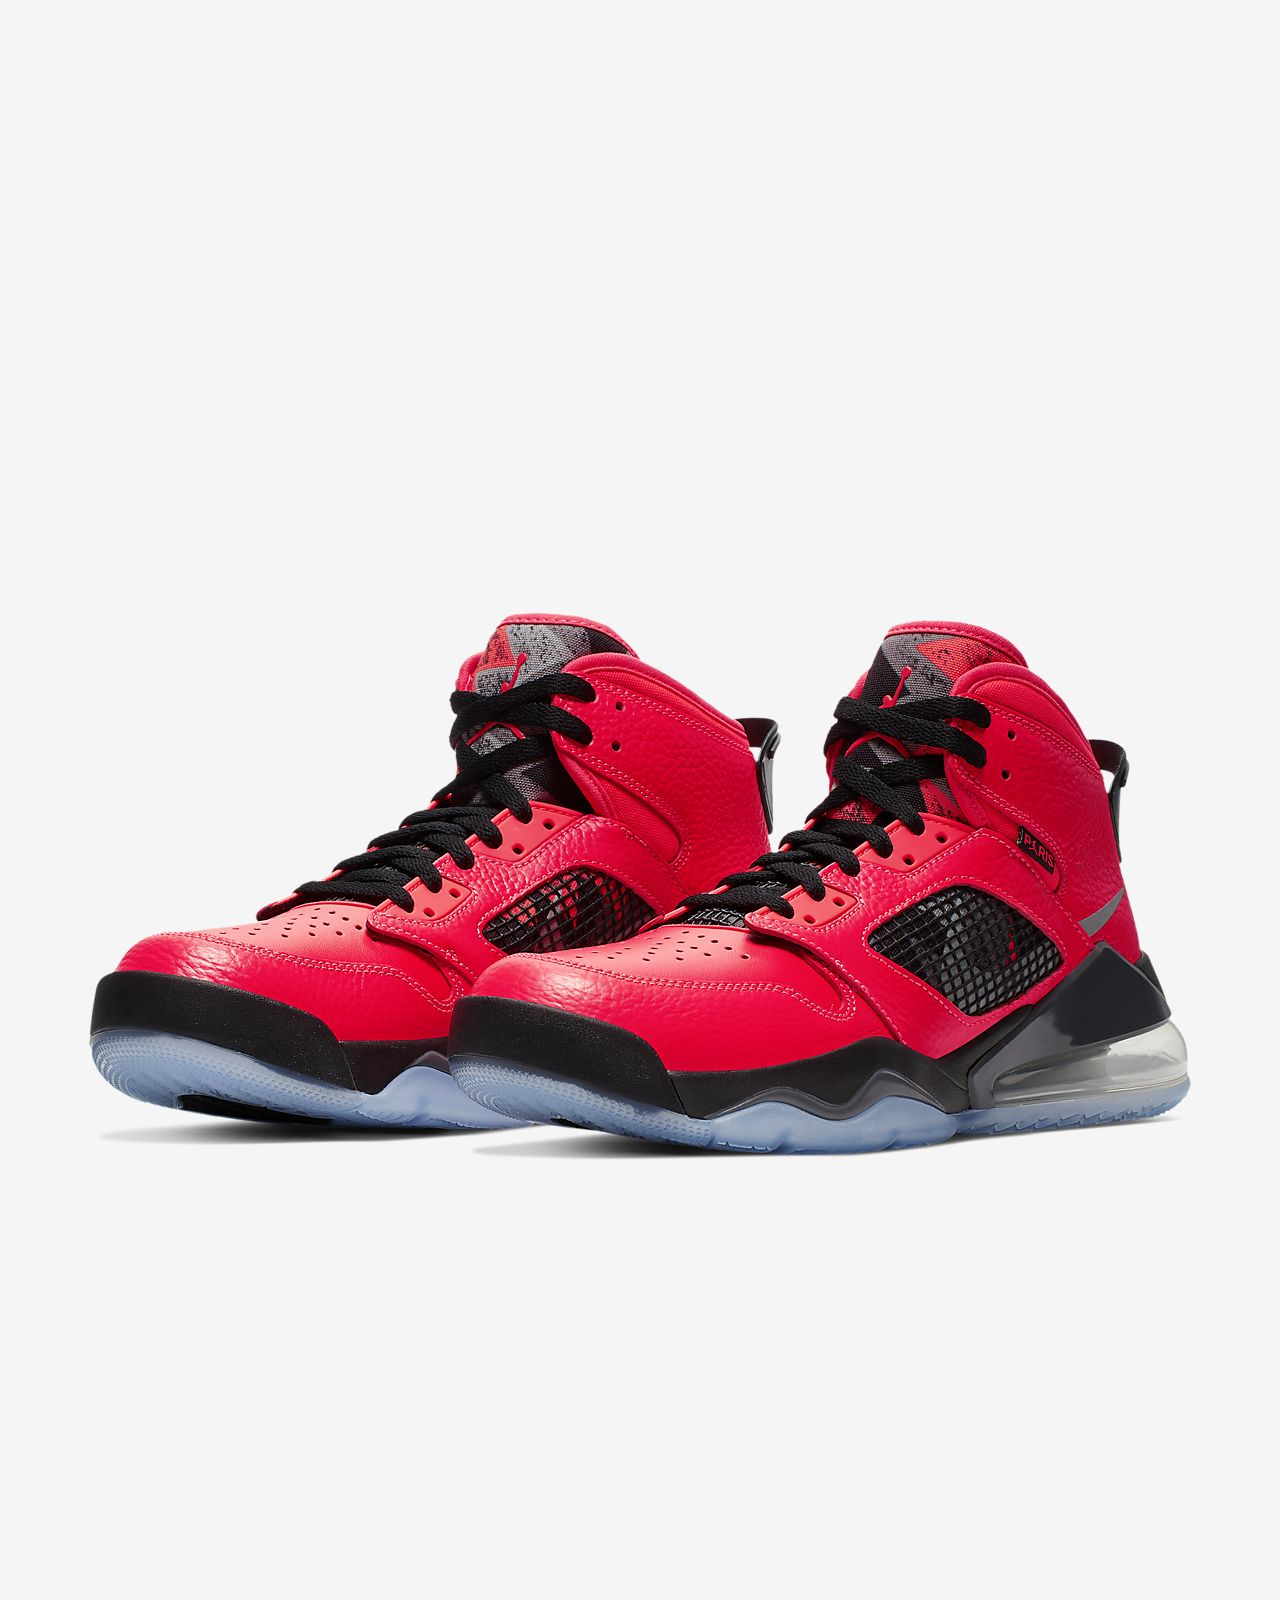 Jordan Paris 270 Germain Saint Mars Herrenschuh drCeoxBW